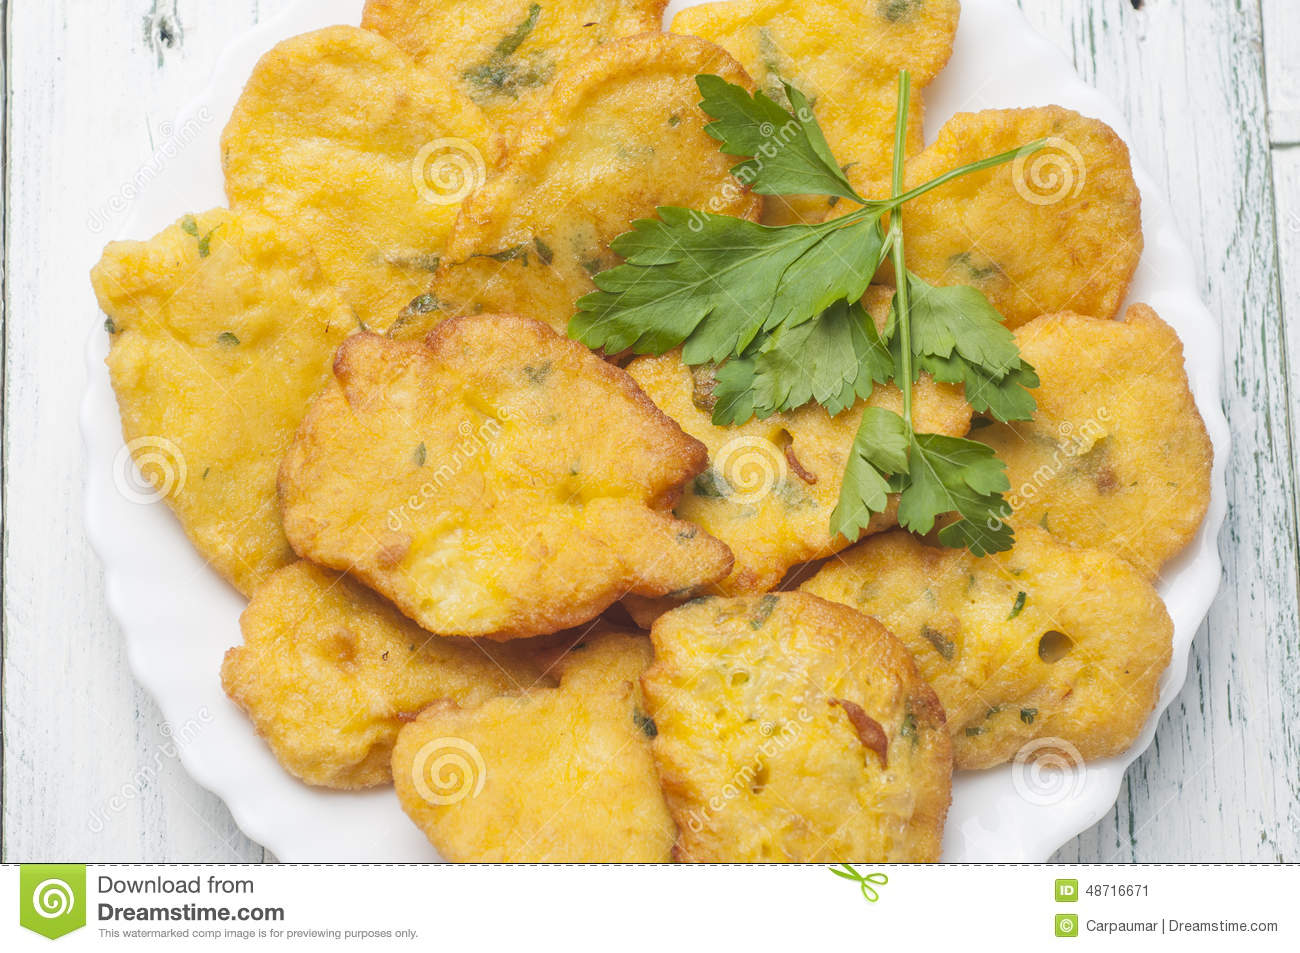 Cod fritters recipe typical Andalusia Spain.